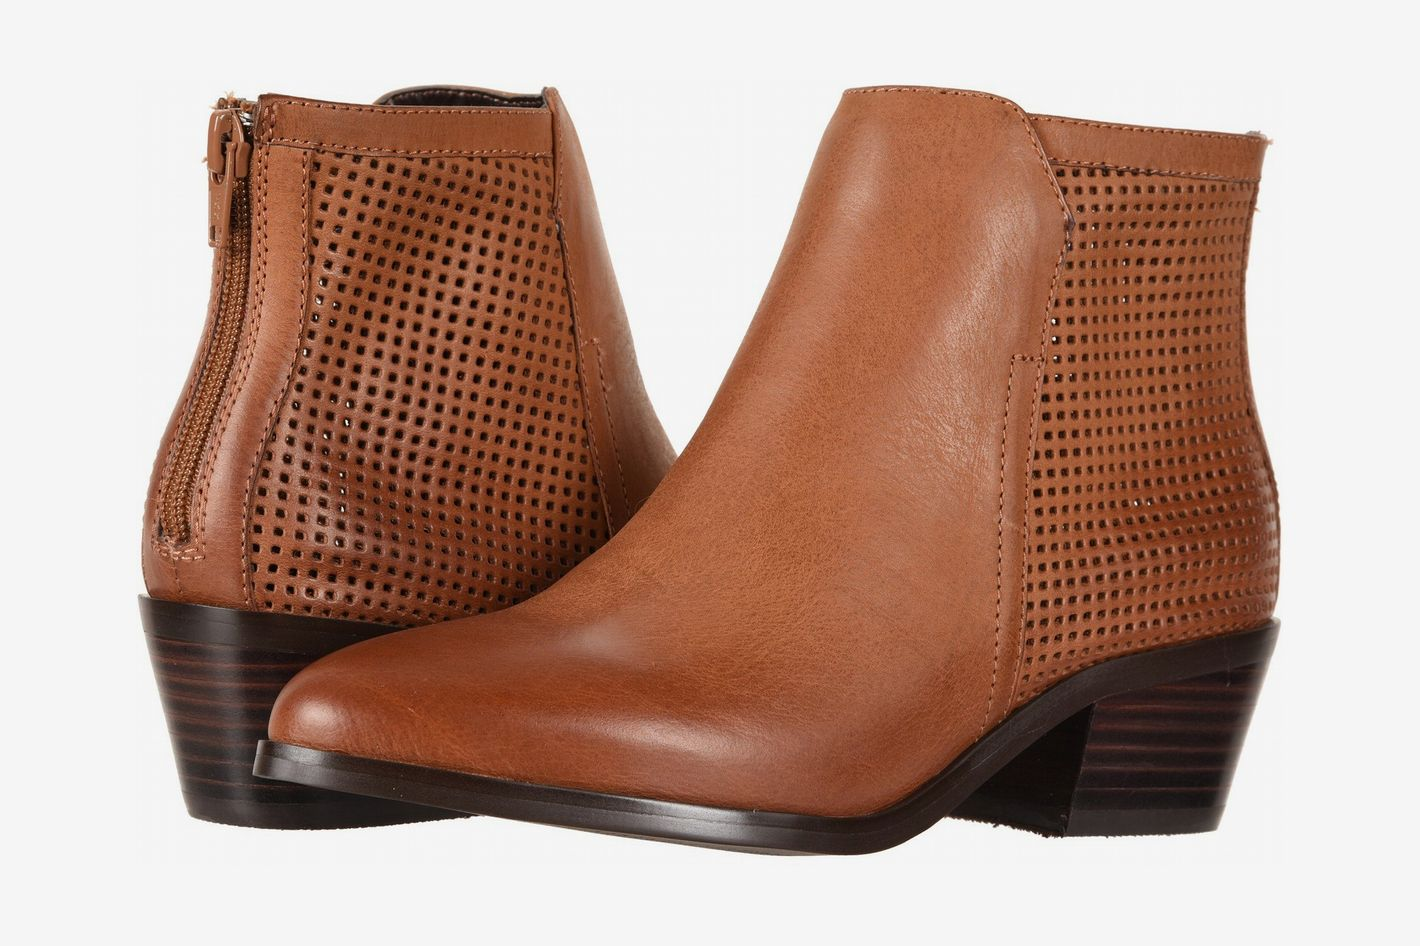 25ce2215f6 11 Best Women's Boots and Chelsea Boots for Wide Feet 2018